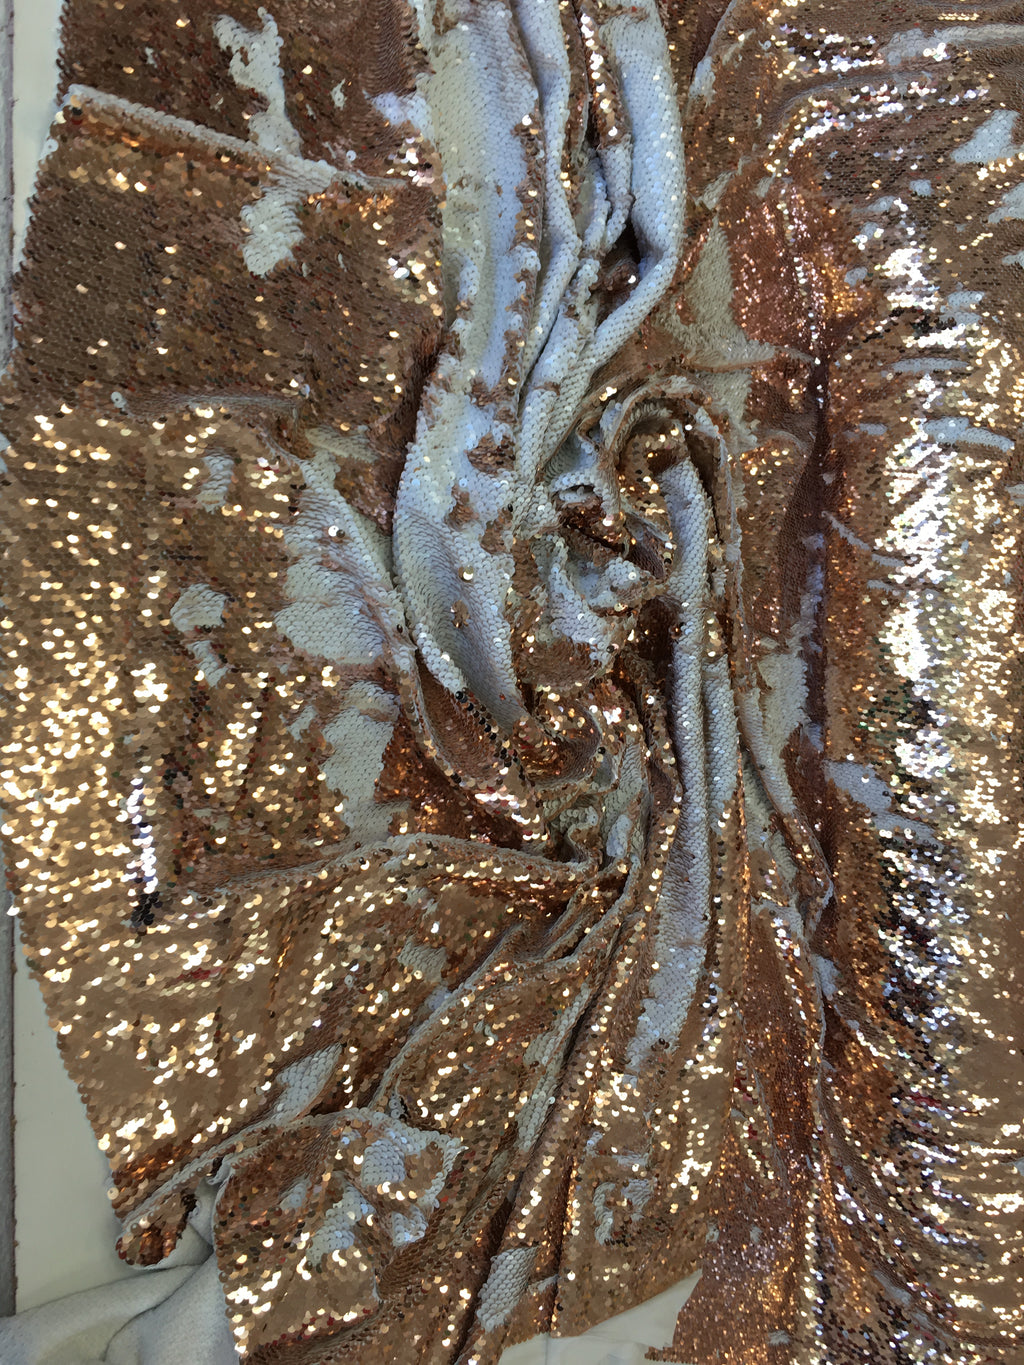 New Unicorn Rose Gold White Iridescent Both SidesNewTwo Tone Flip up Sequins/Reversible Sequins Fabric Sold By The Yard